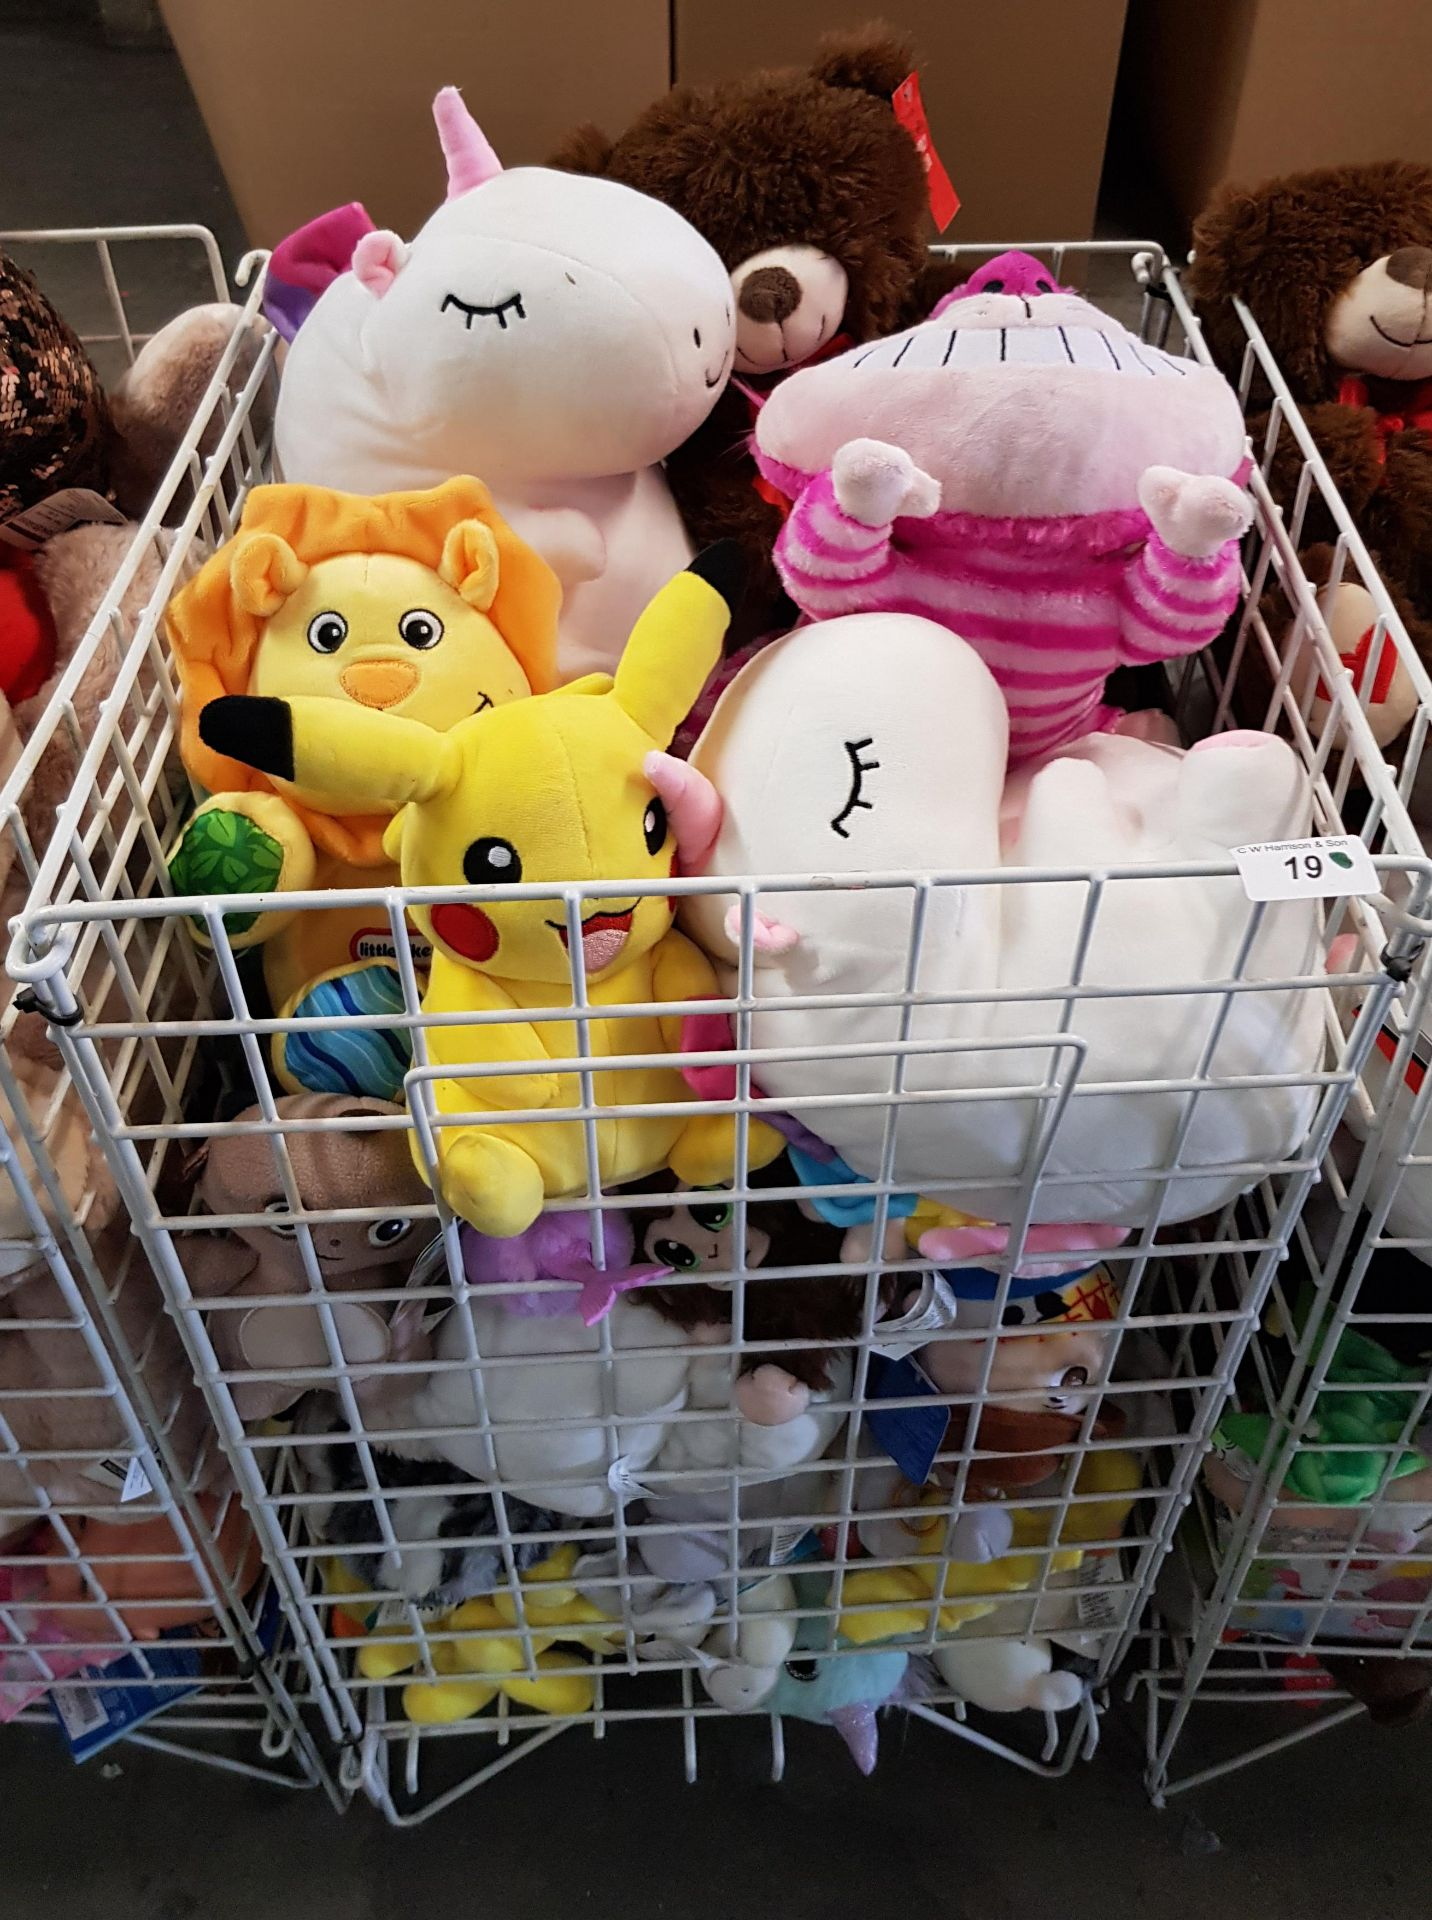 Lot 19 - CONTENTS OF CAGE - MIXED SOFT TOYS